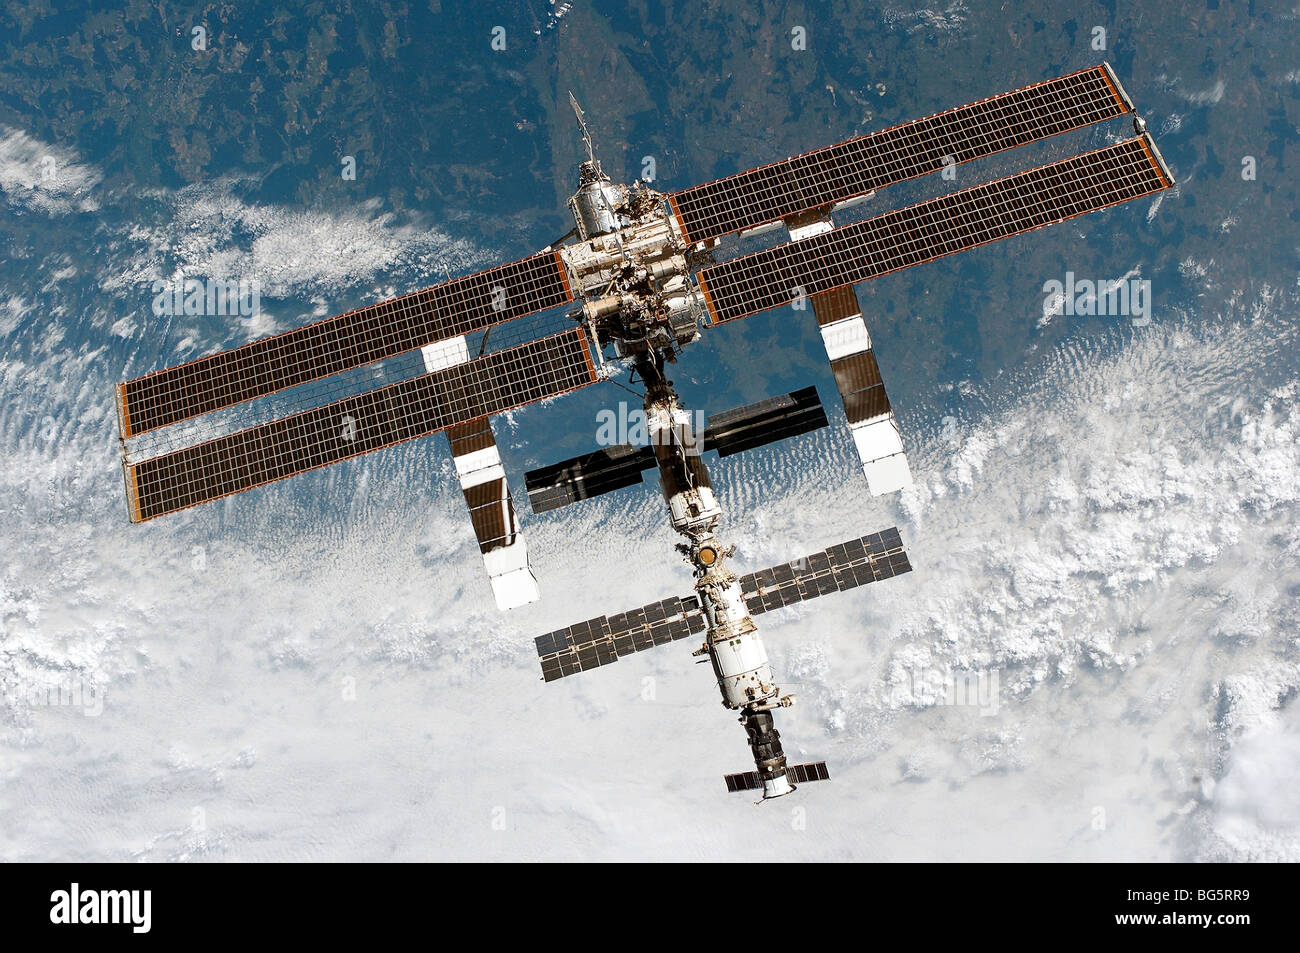 the International Space Station moments after the orbiter undocked from the Station. - Stock Image